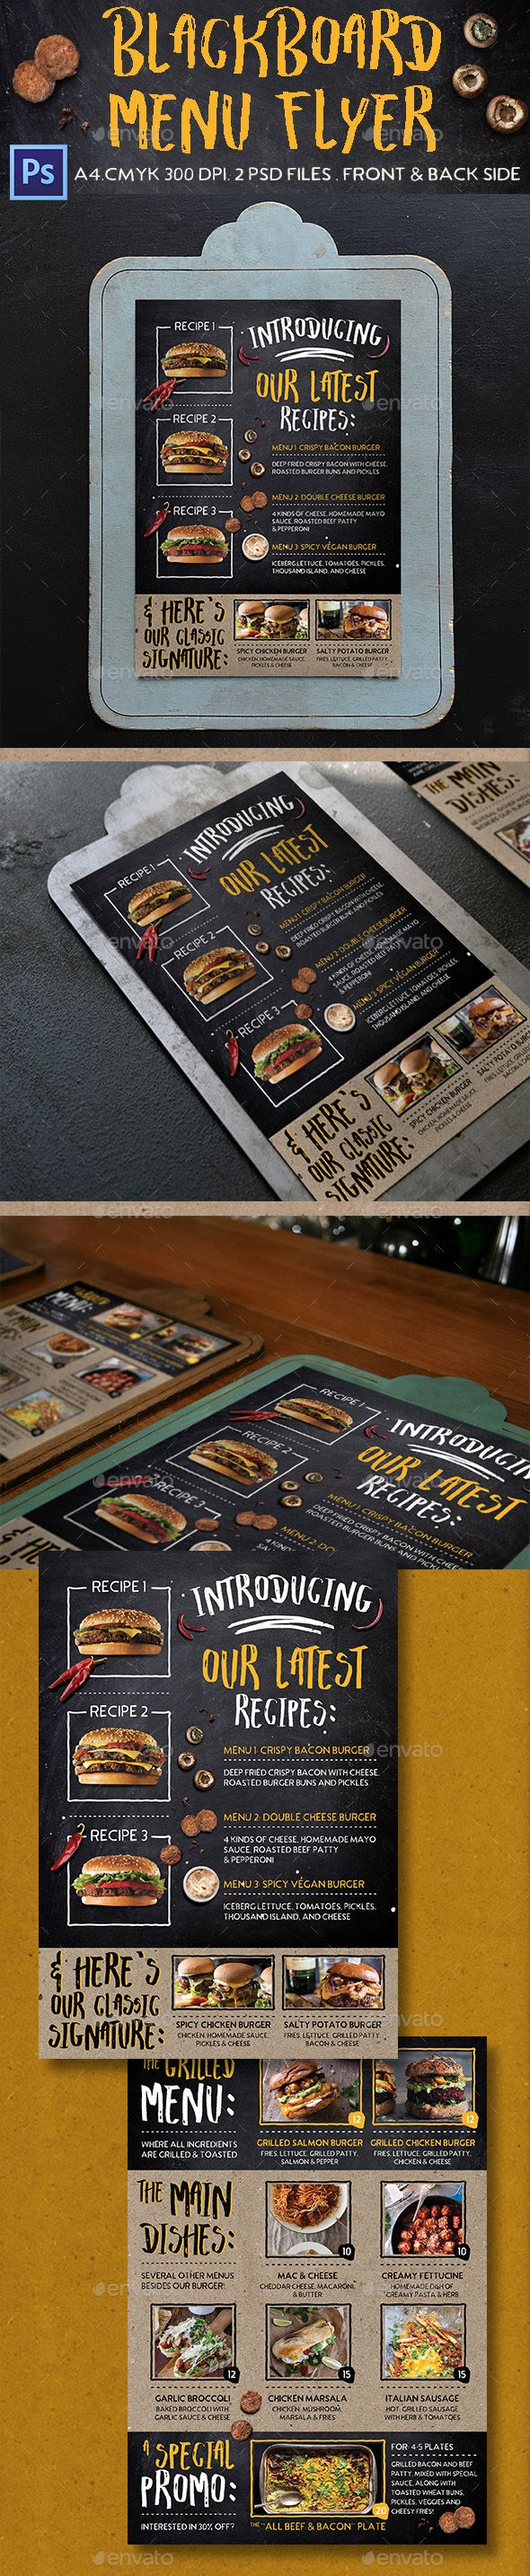 Blackboard Menu Flyer — Photoshop PSD #modern menu #card • Download ➝ https://graphicriver.net/item/blackboard-menu-flyer/19085764?ref=pxcr